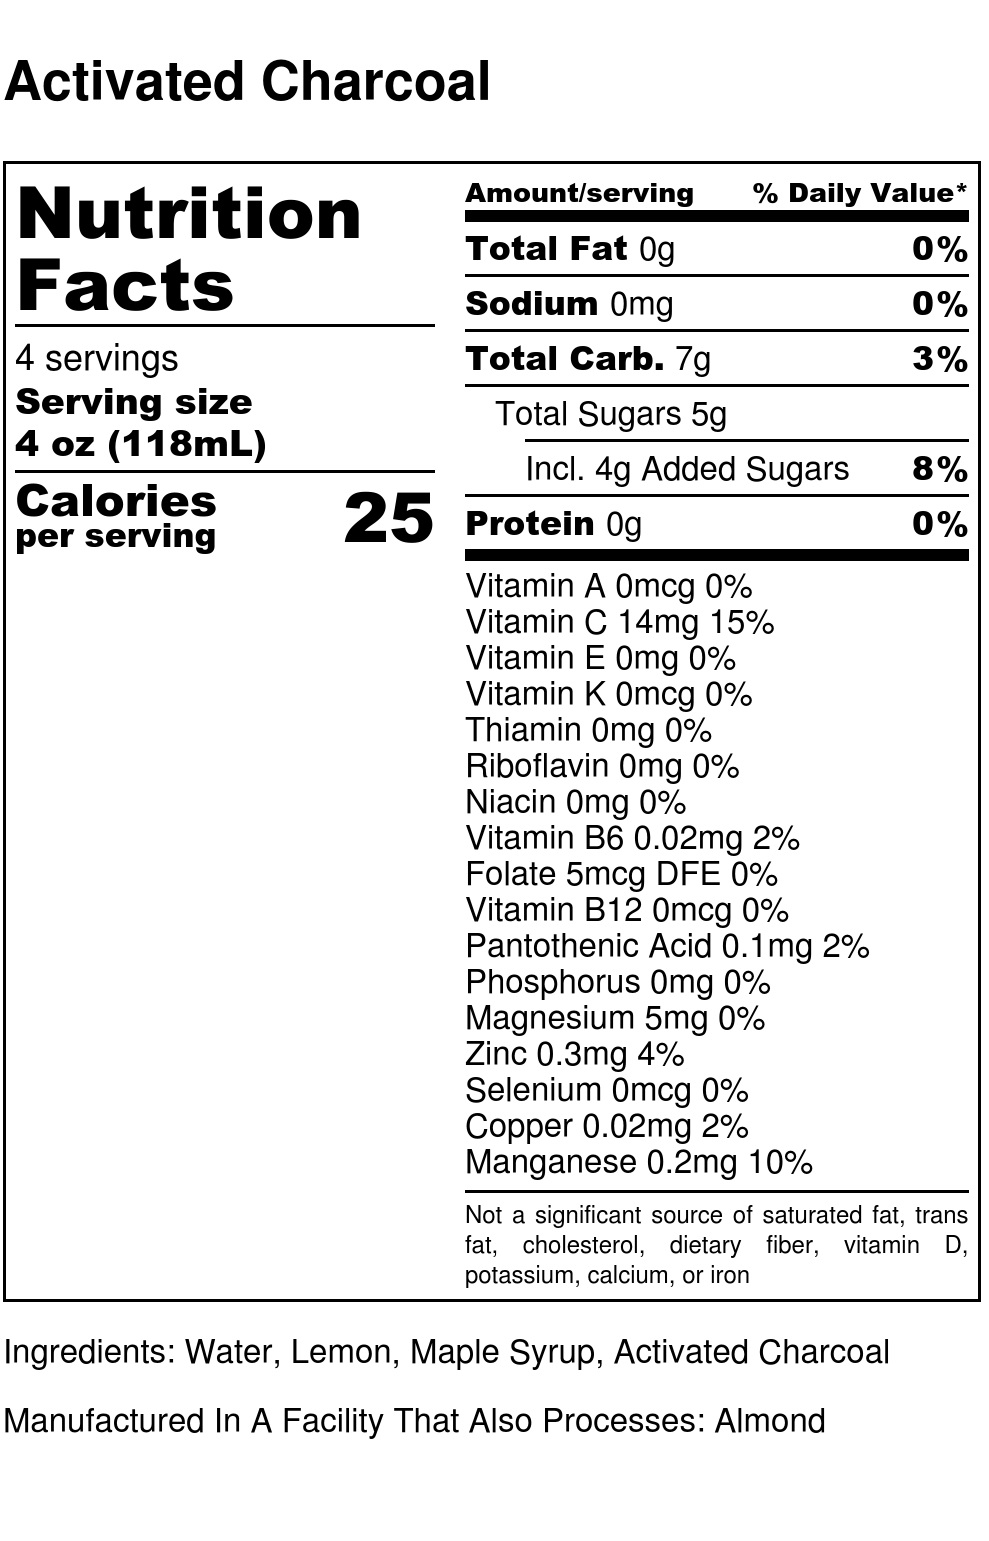 Activated Charcoal - Nutrition Label.jpg